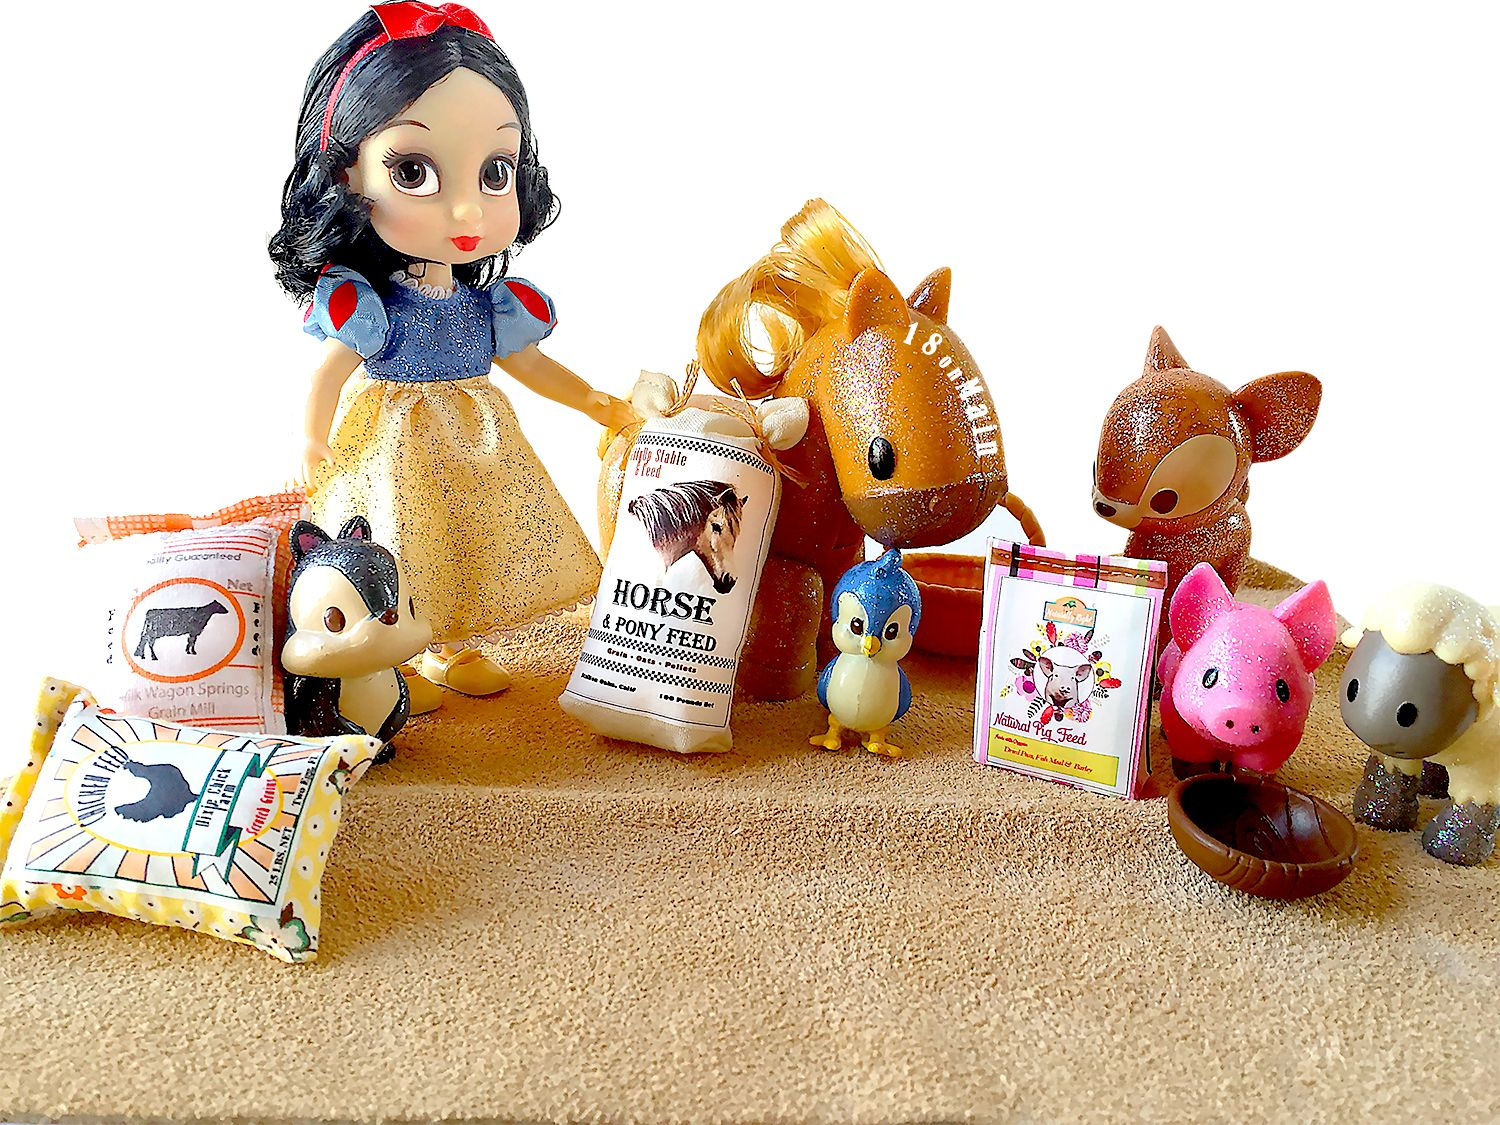 Cowgirl ranch stable pet feed 18 doll pet pattern